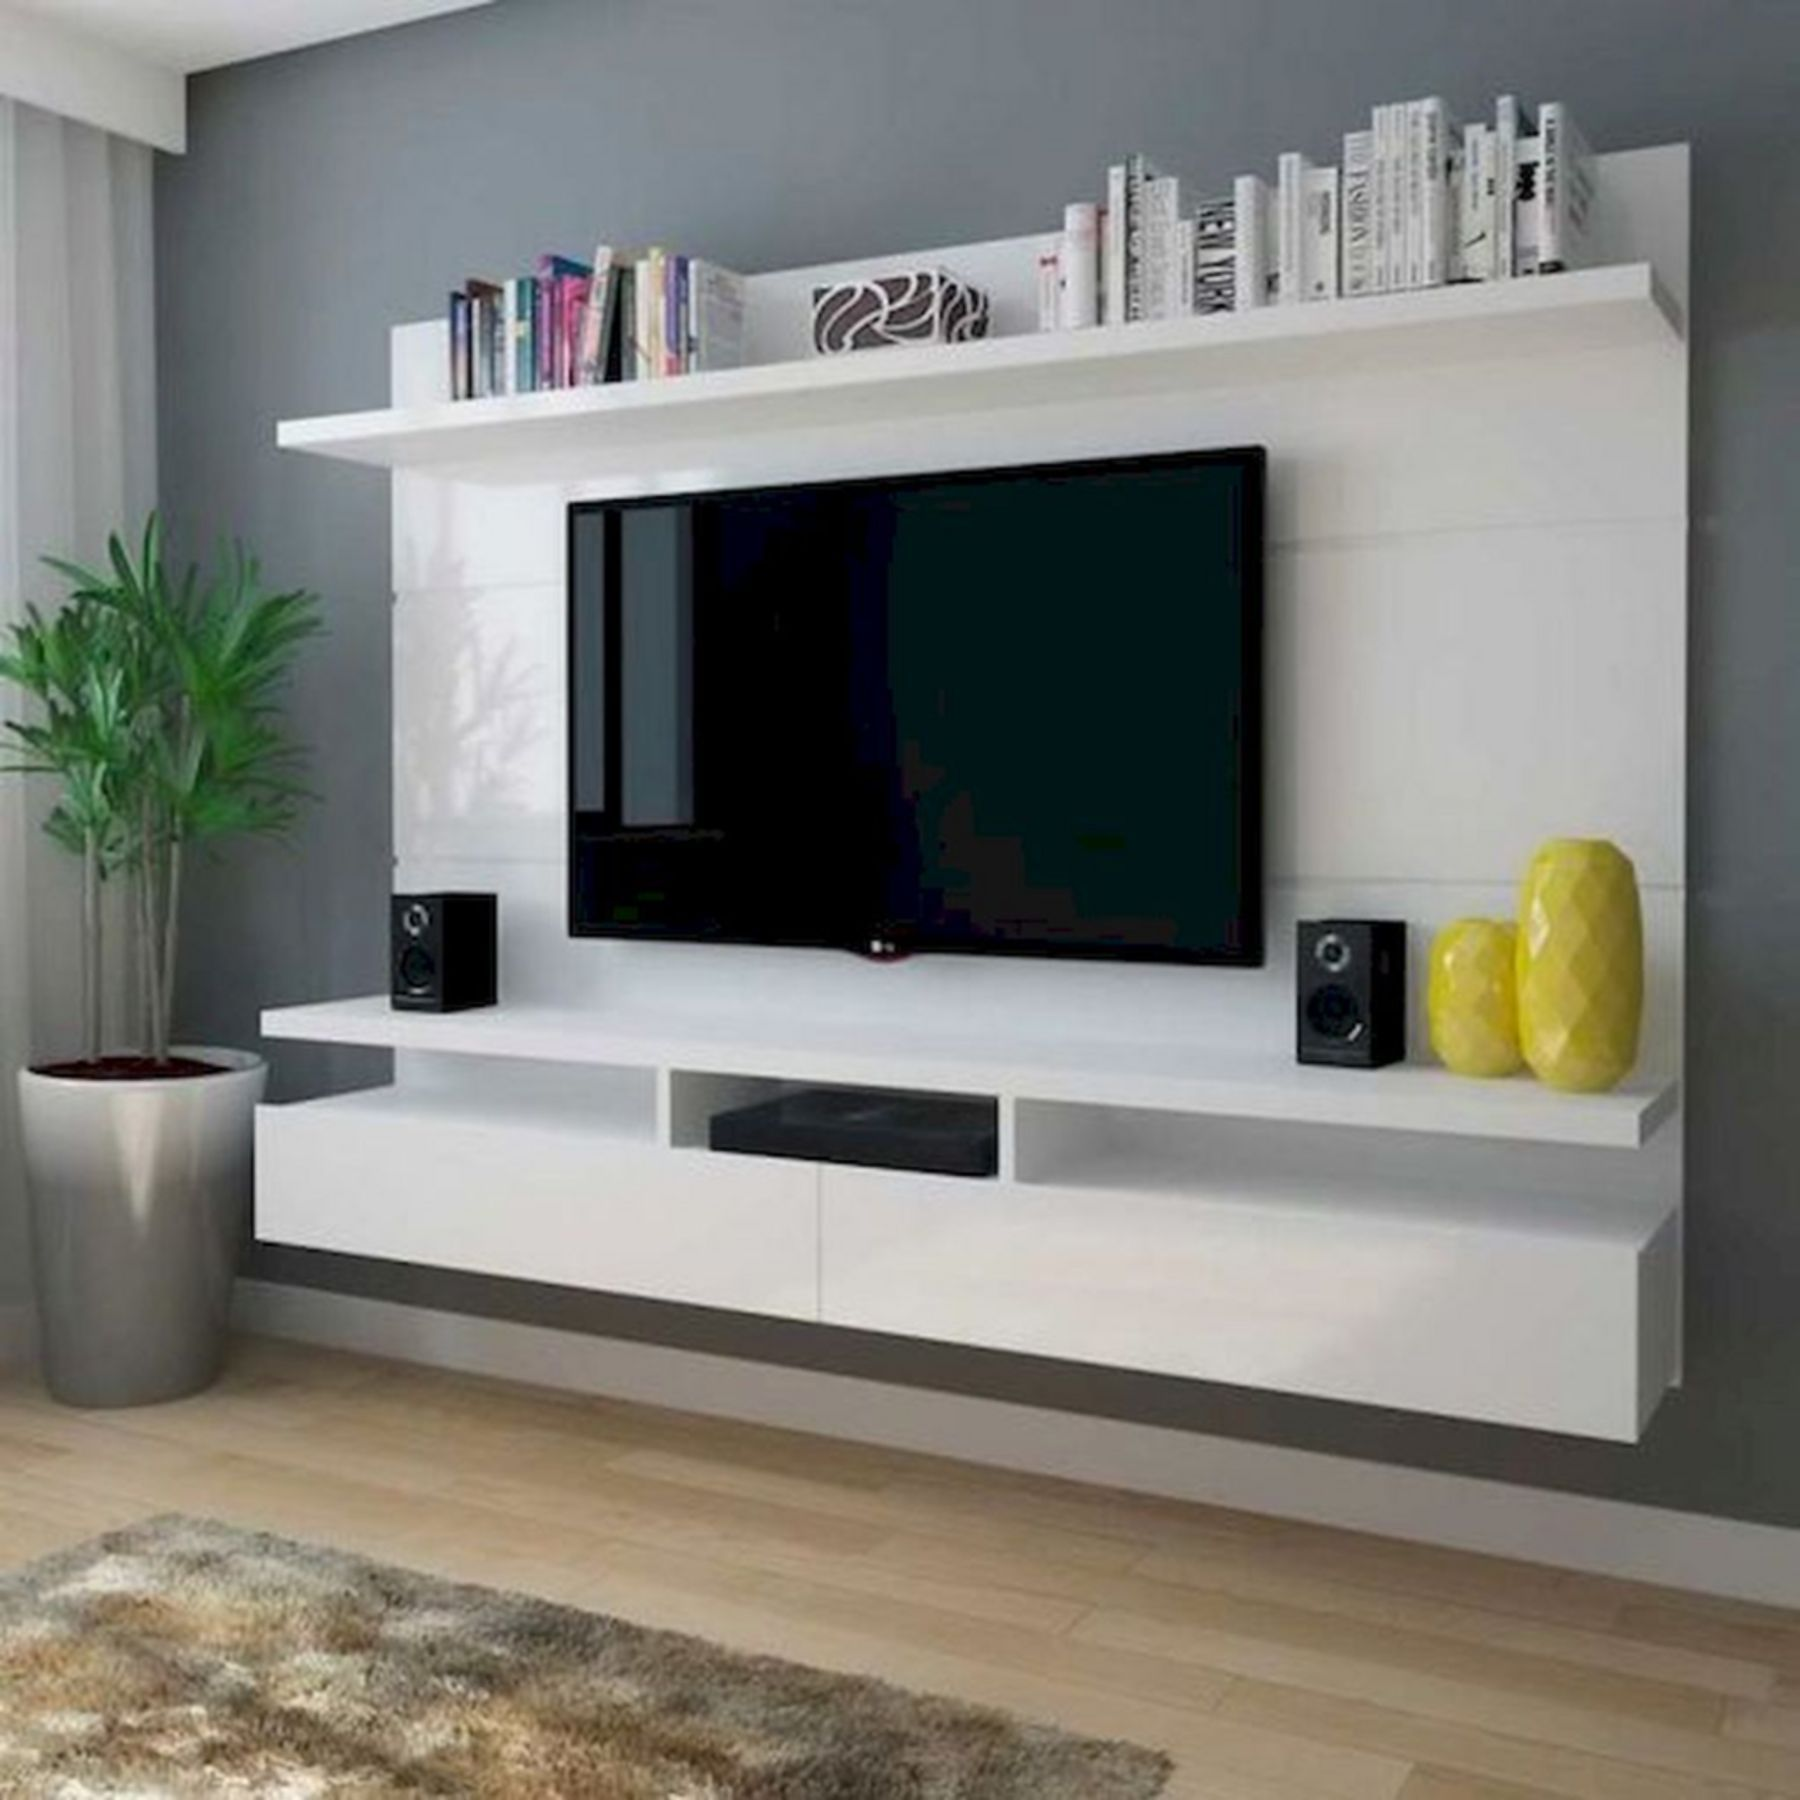 10 Incredible Minimalist Rack Tv Design Ideas For Your Minimalist Home Tv Wall Design Wall Mount Tv Shelf Tv Wall Shelves